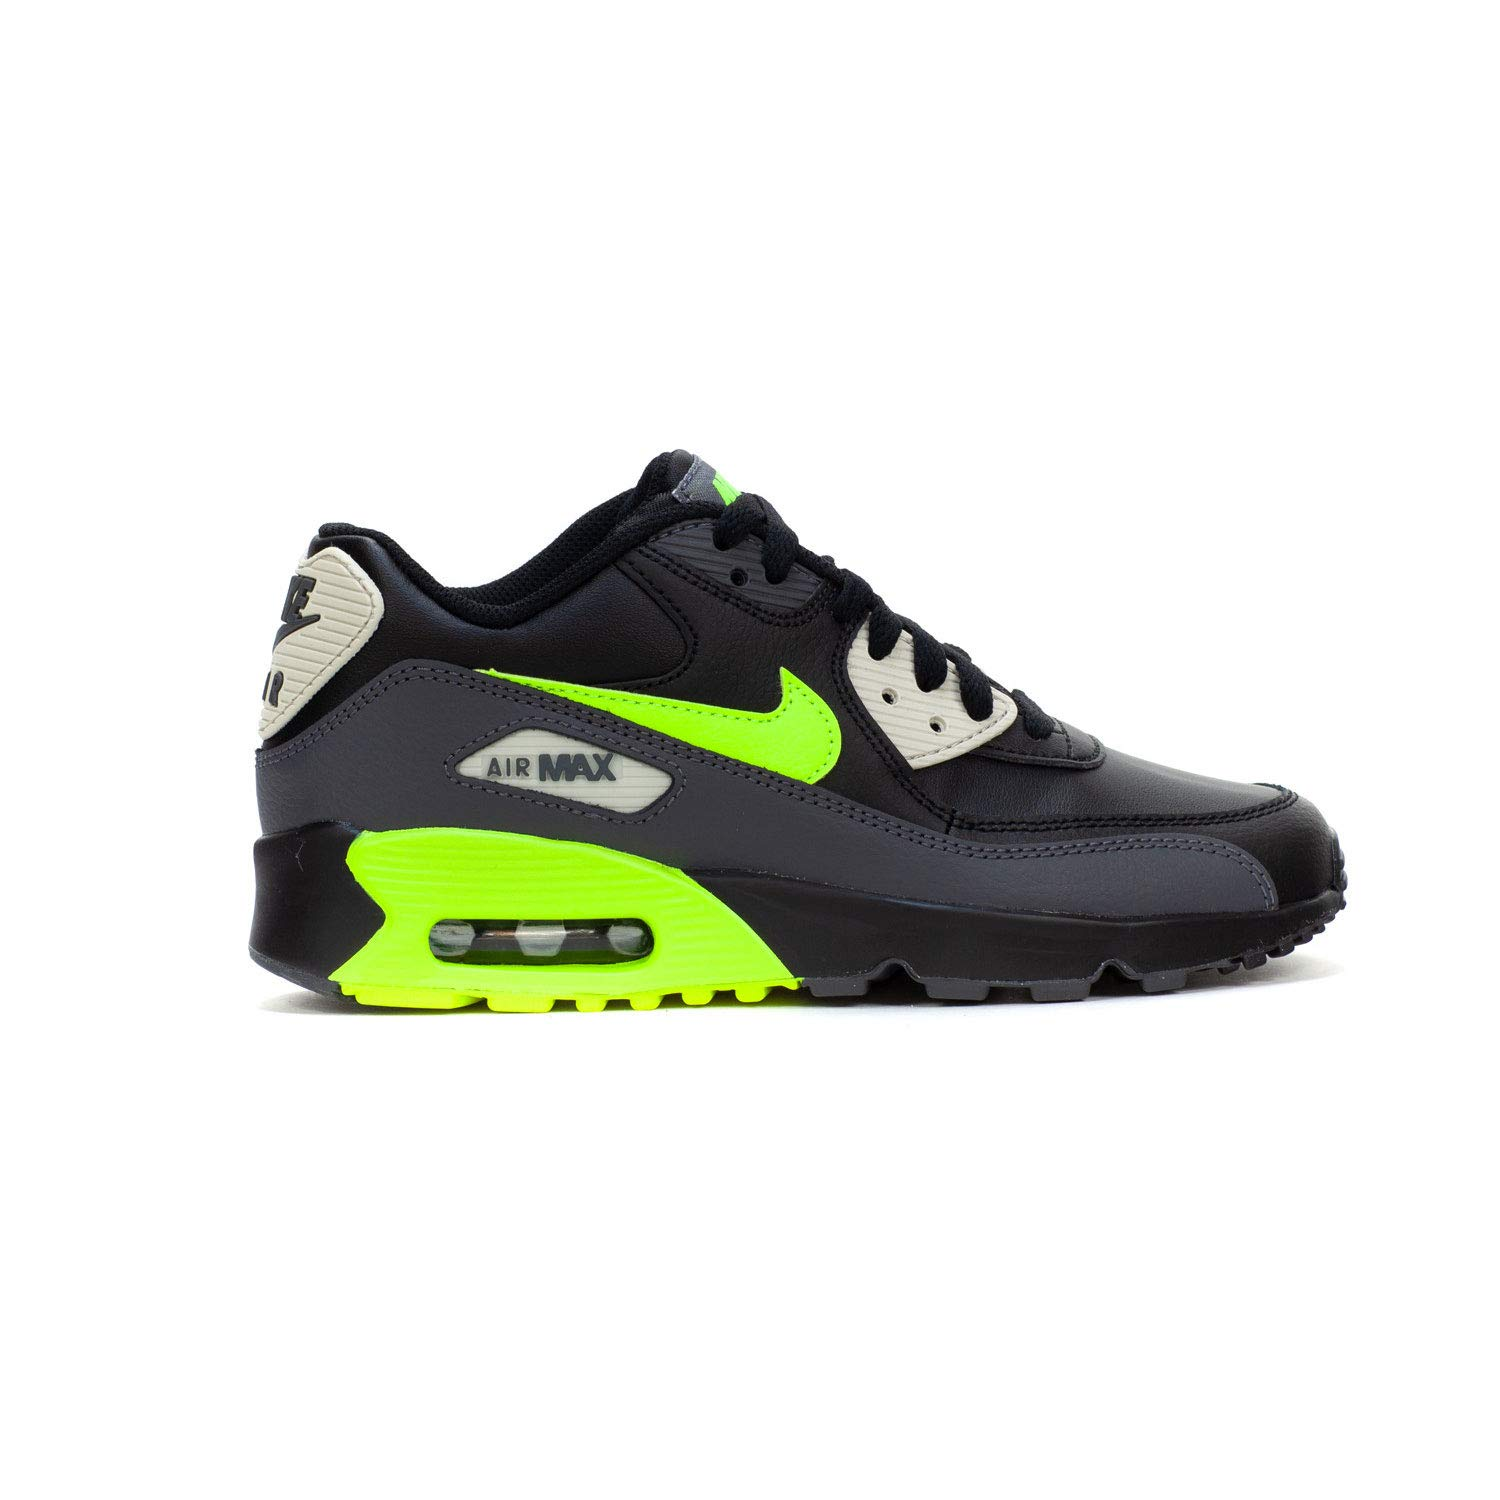 b05711f03e Galleon - Nike Air Max 90 Leather Kids Black Dark Grey/Volt-Black-Light  Bone 833412-023 (Size: 4.5Y)